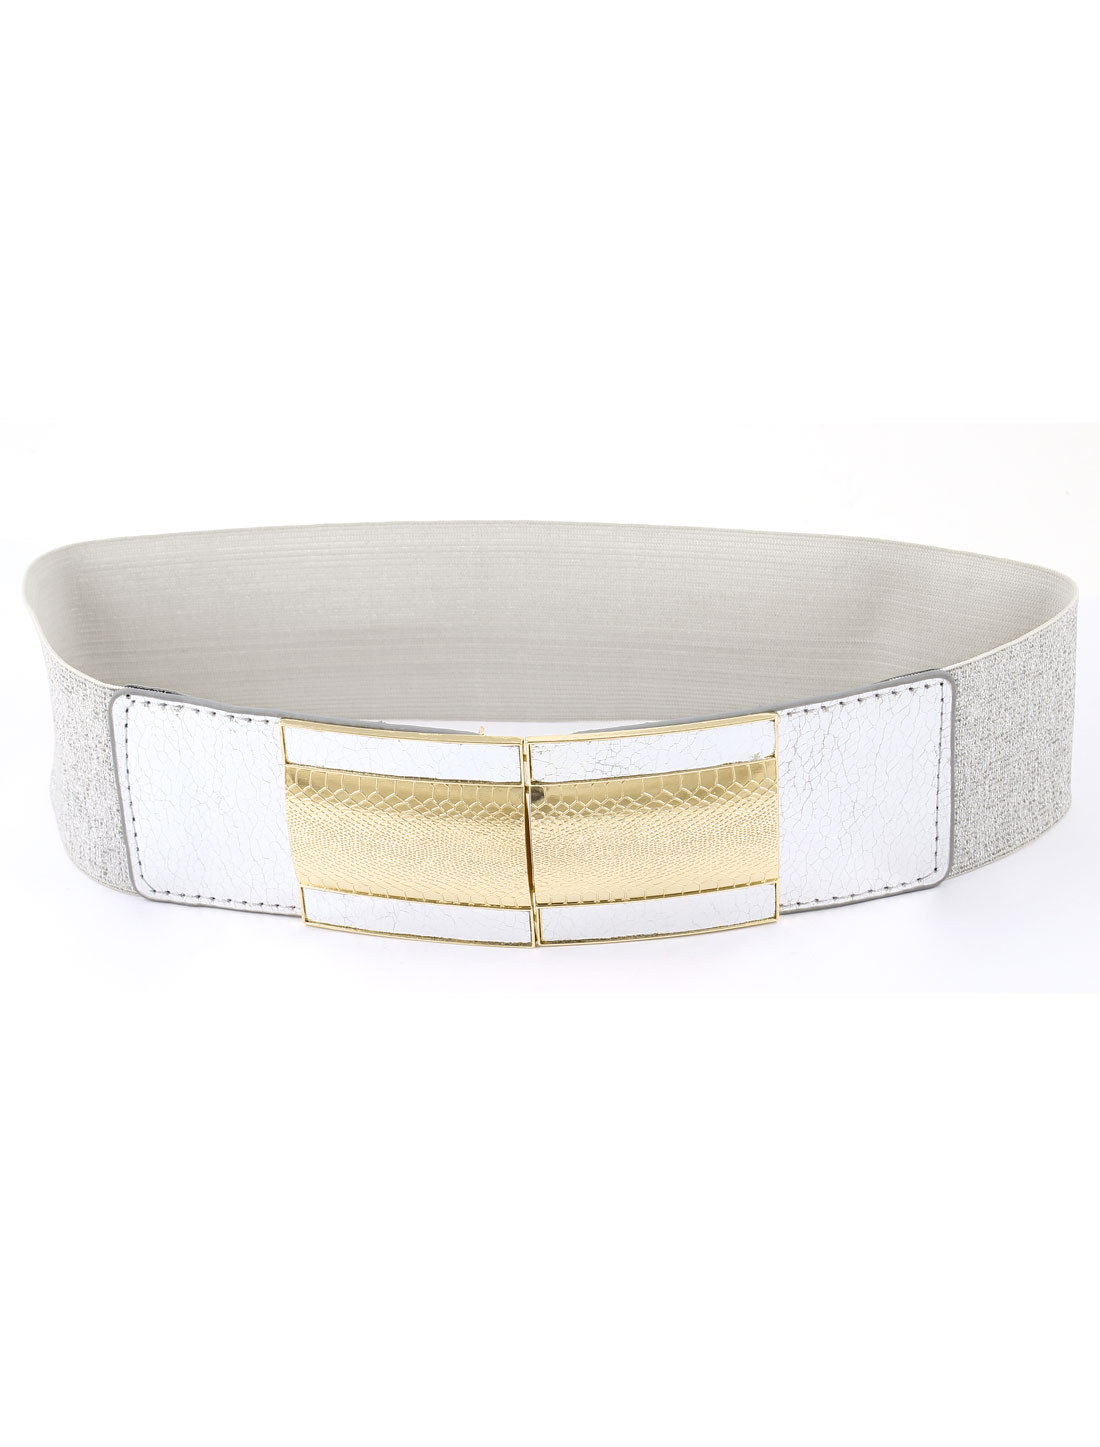 Gold Tone Metal Snake Pattern Buckle Waist Belt Silver Tone for Lady